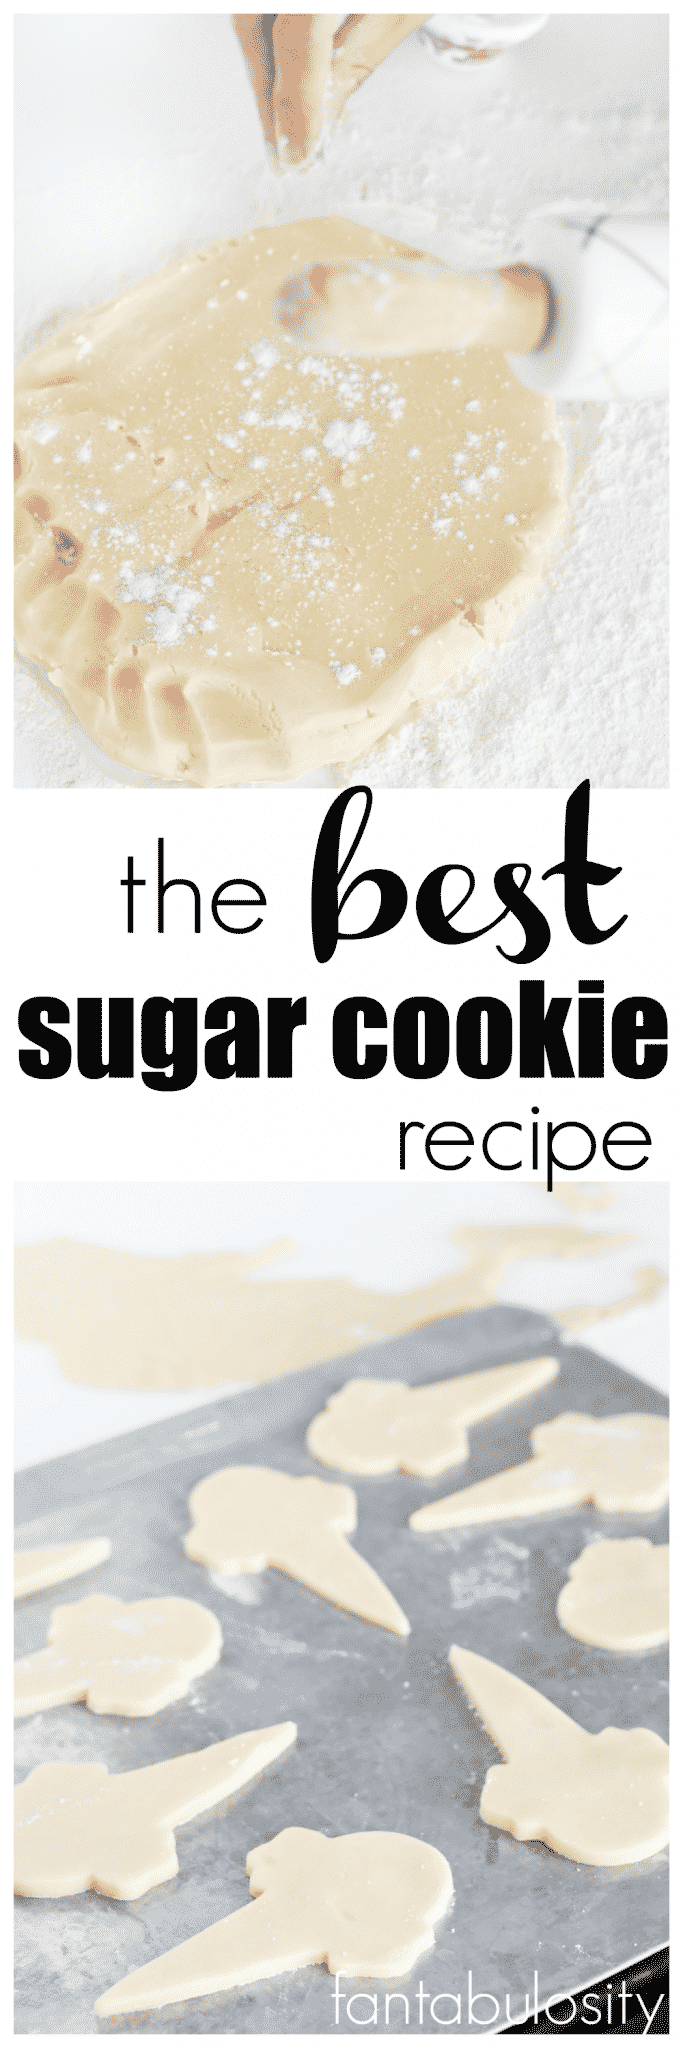 Easy Sugar Cookie Recipe. Great for cut out cookies and decorating!!! The BEST Sugar Cookie Recipe for decorating and eating. After baking, freeze them to decorate later! They're THAT good!